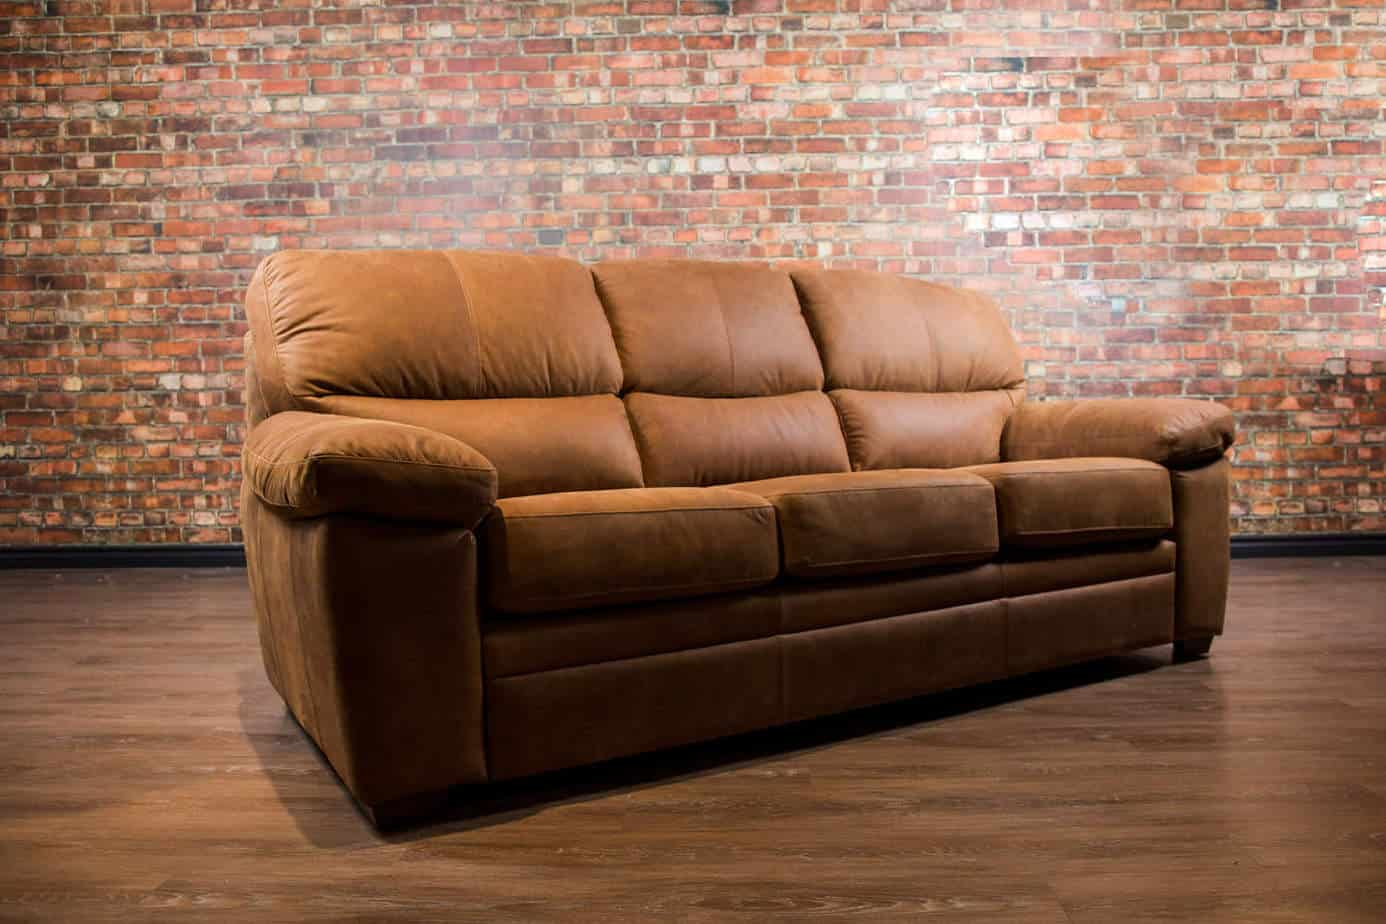 The Bunker Leather Sofa Canada S Boss Leather Sofas And